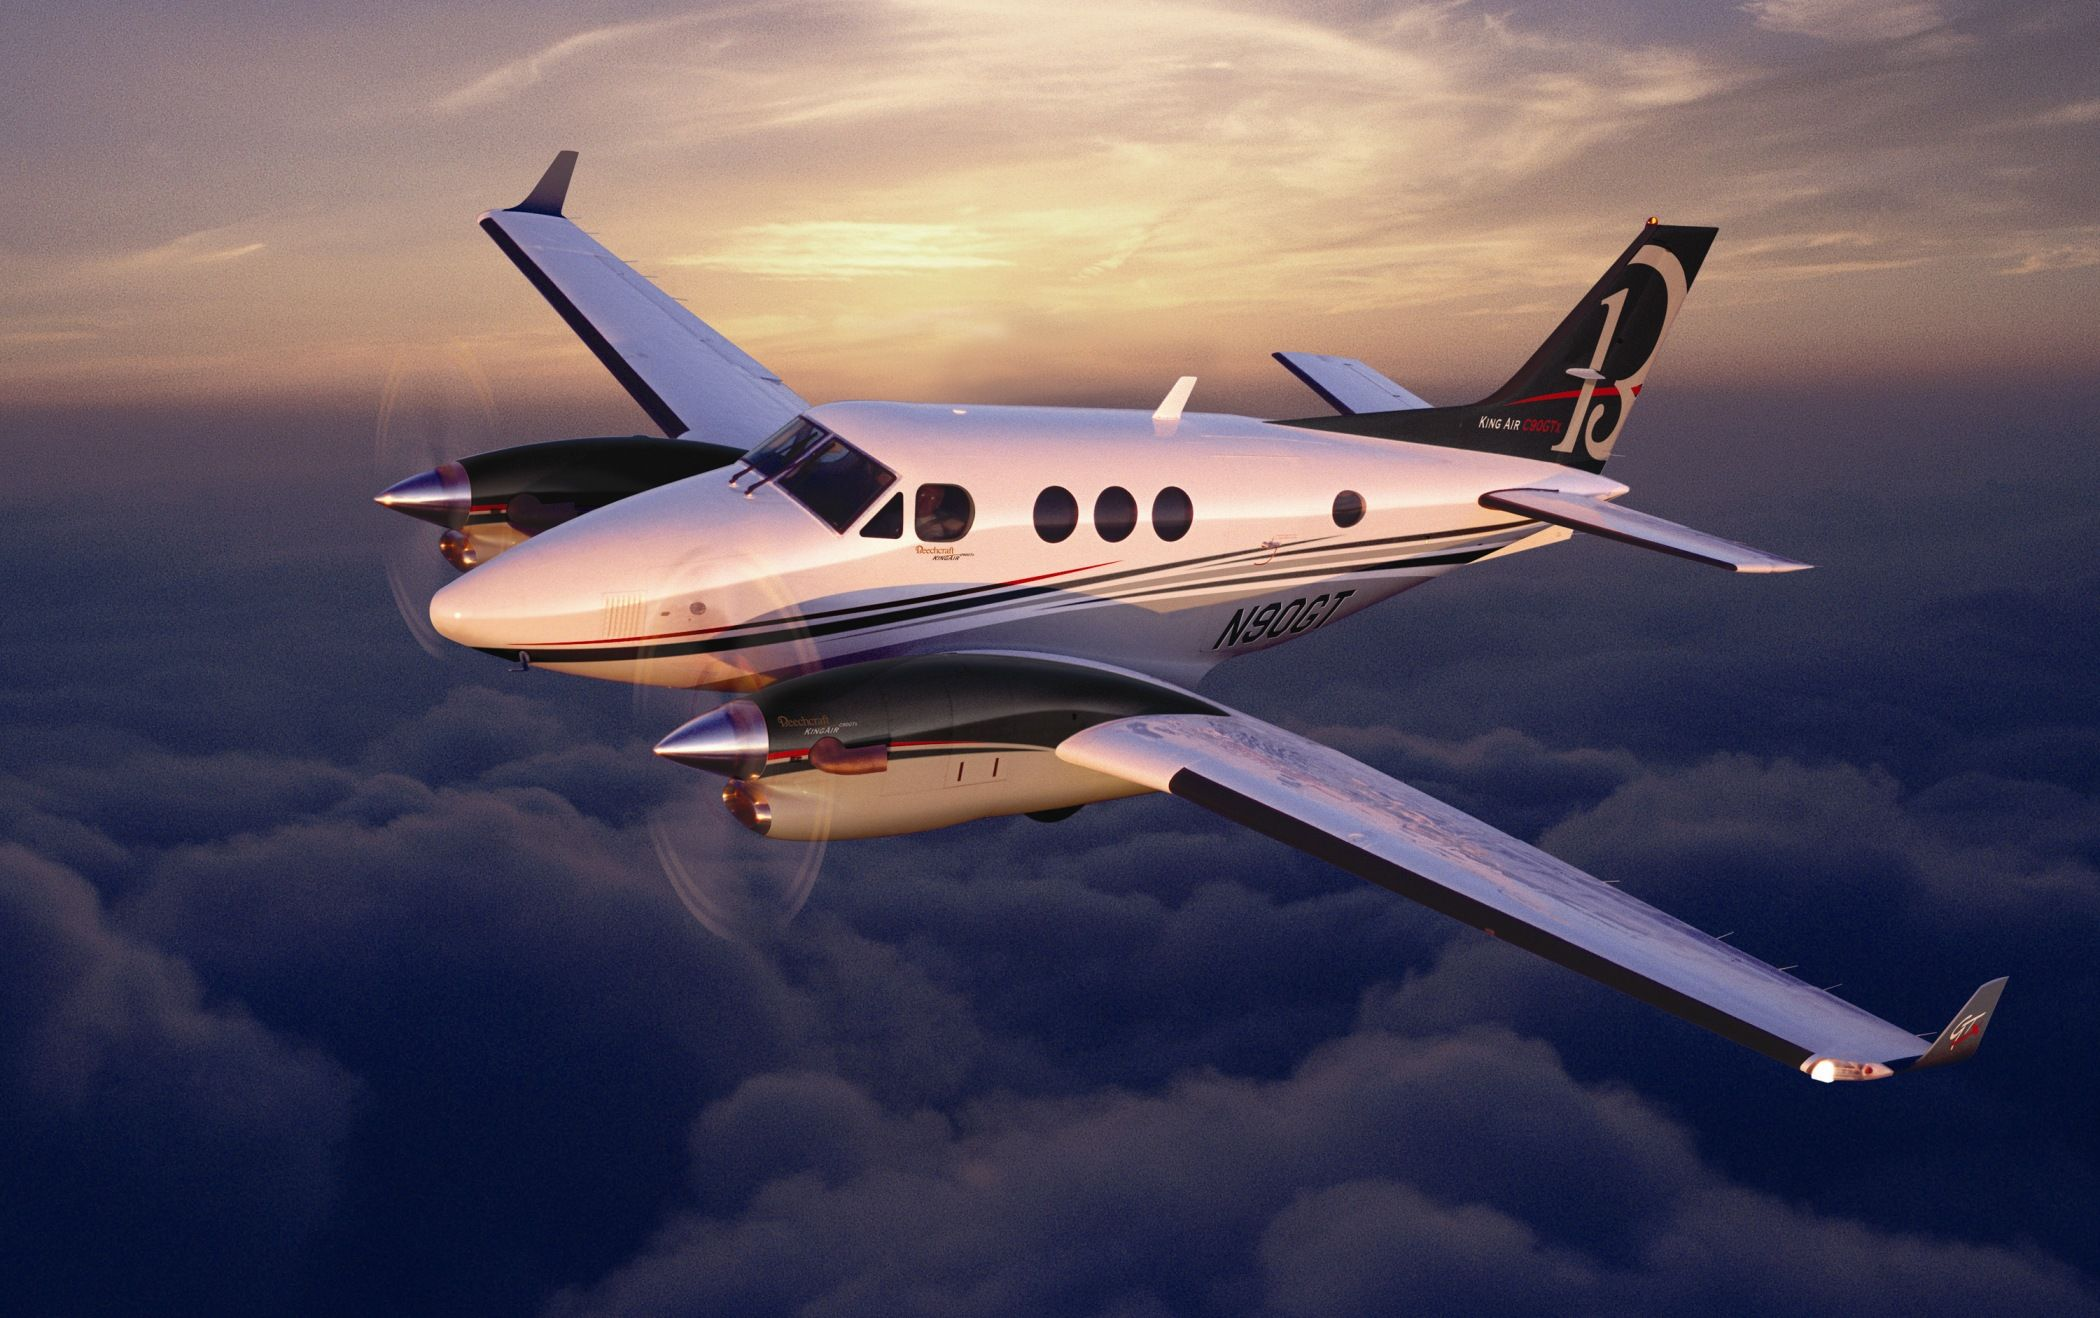 King Air Private aircraft, Pilot training